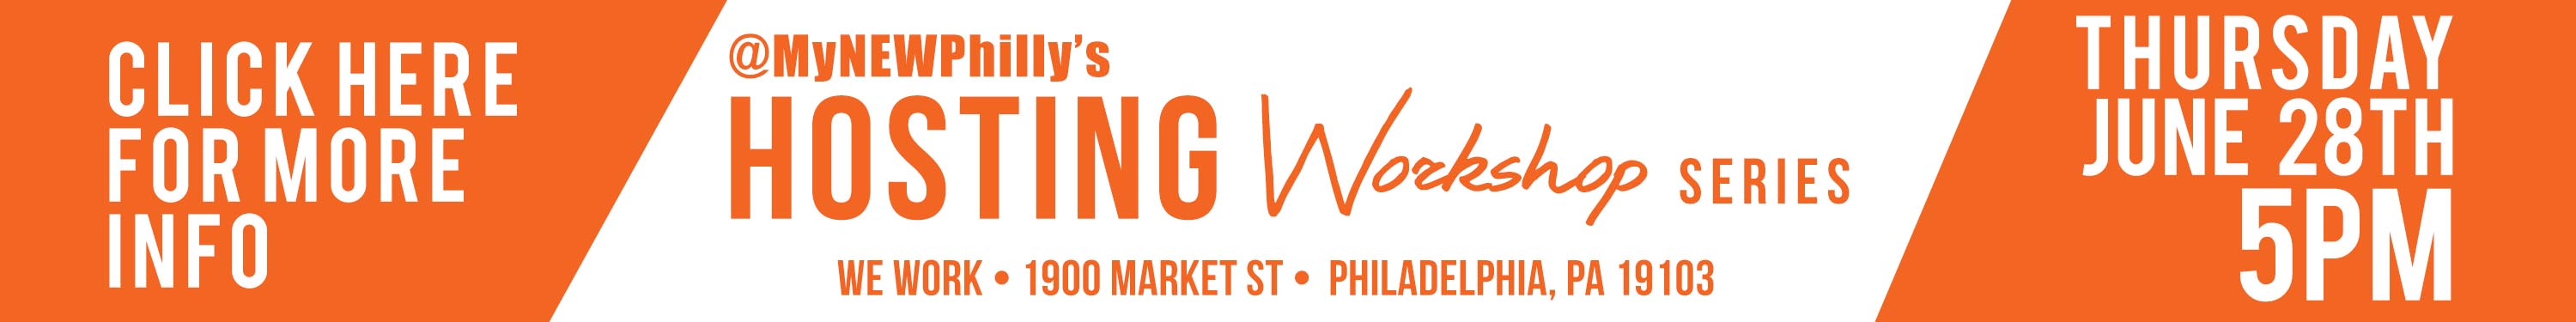 MyNEWPhilly hosting workshop